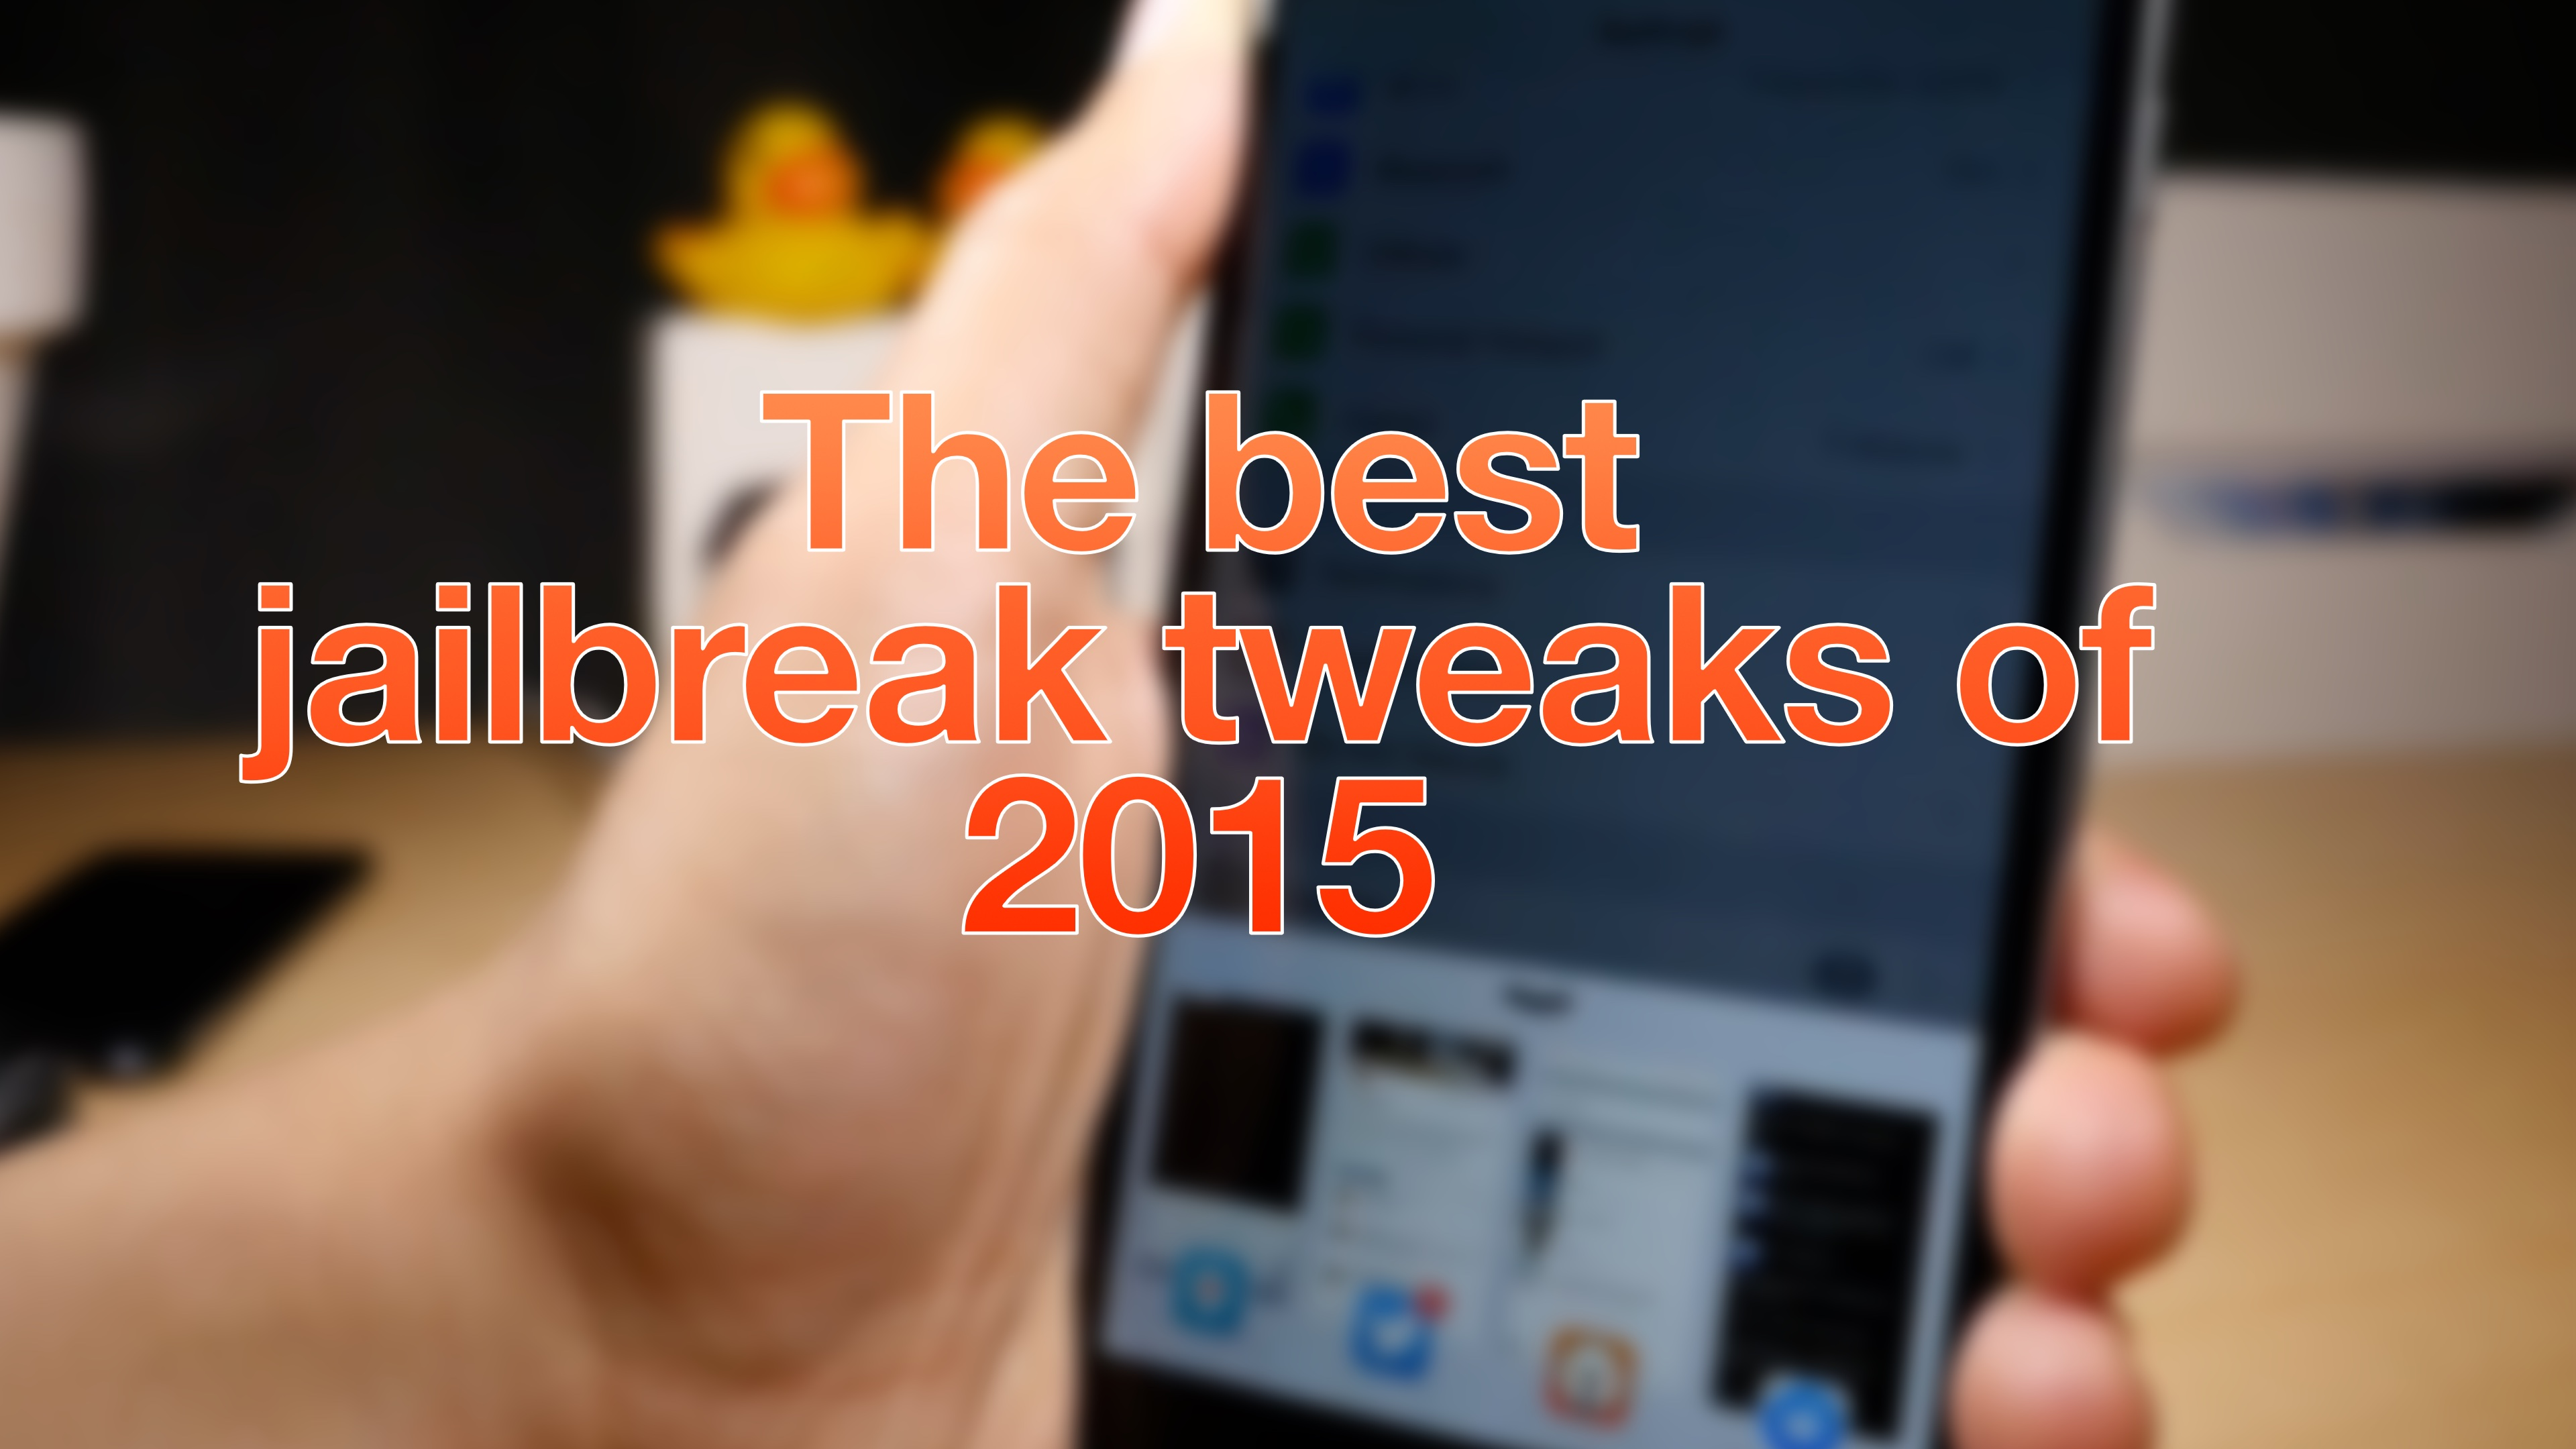 Best tweaks of 2015